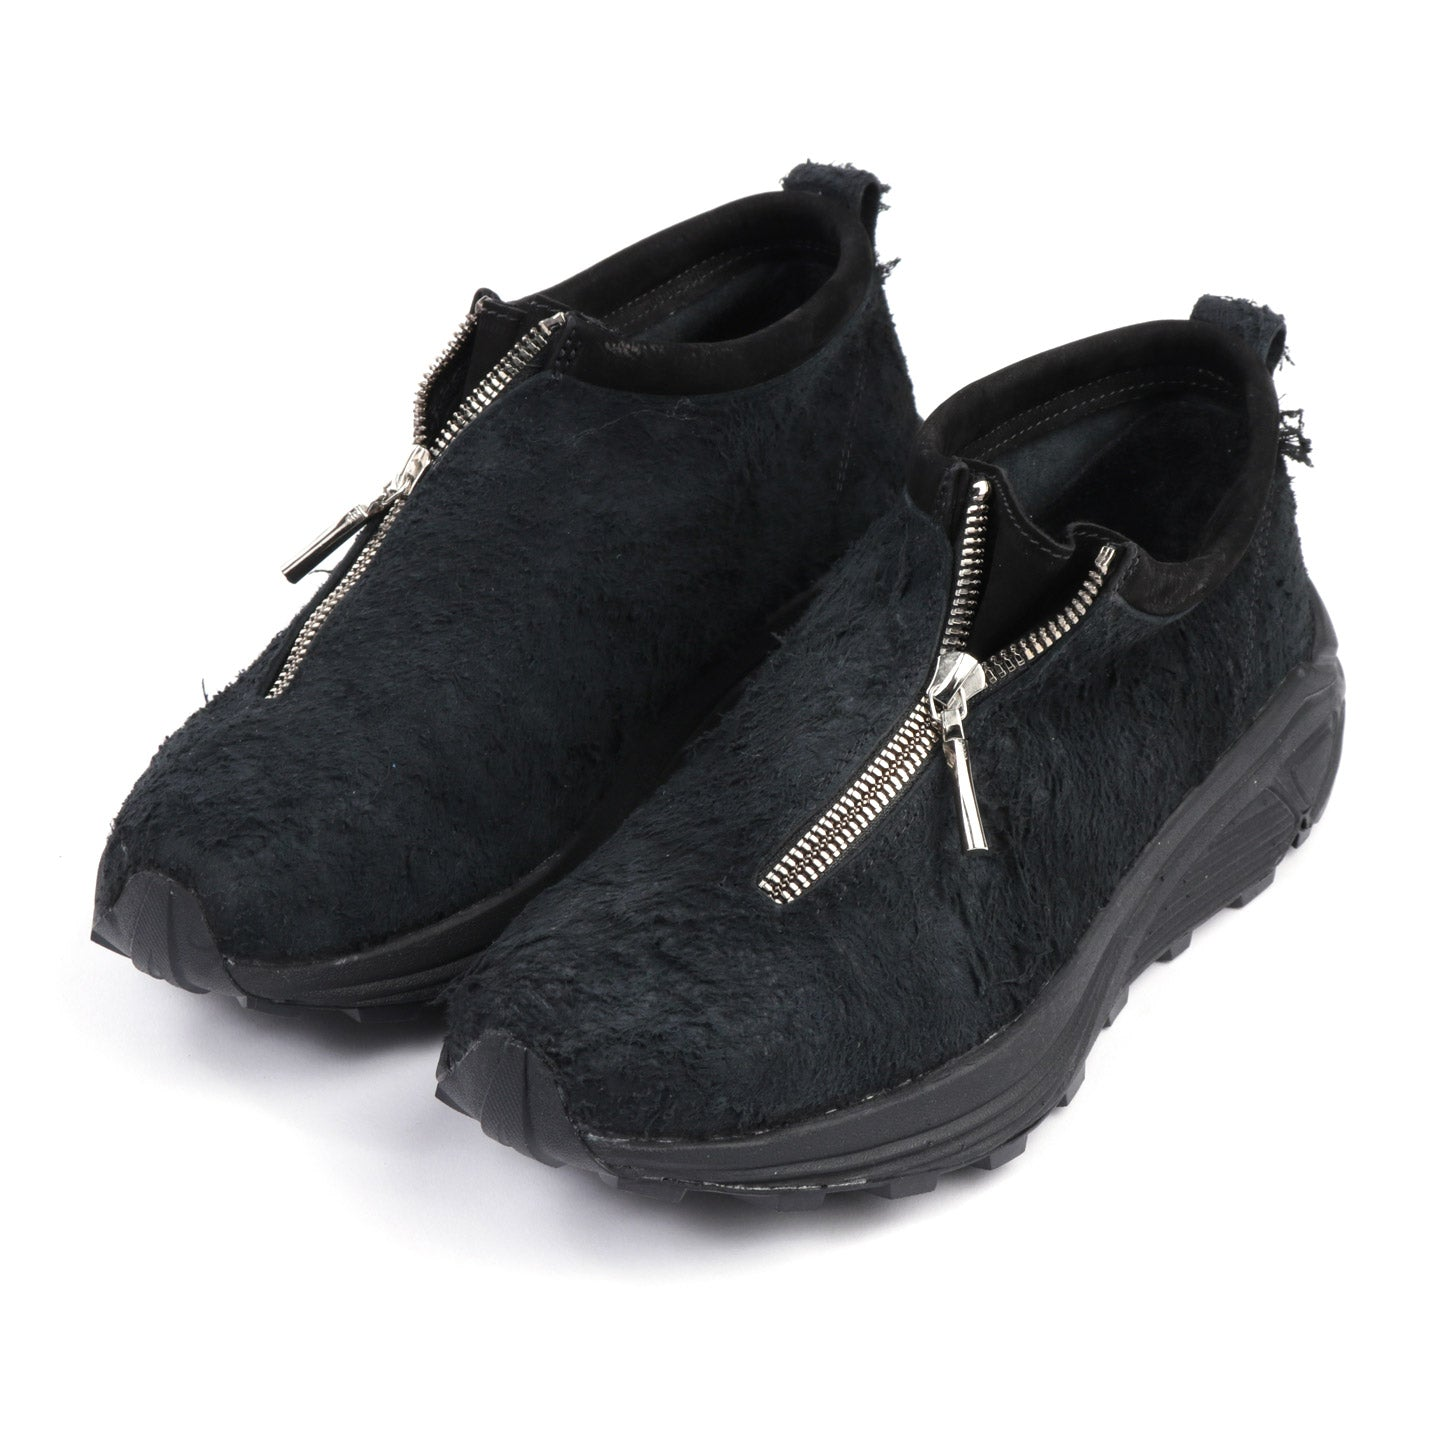 DIEMME FONTESI LOW BLACK MOHAWK